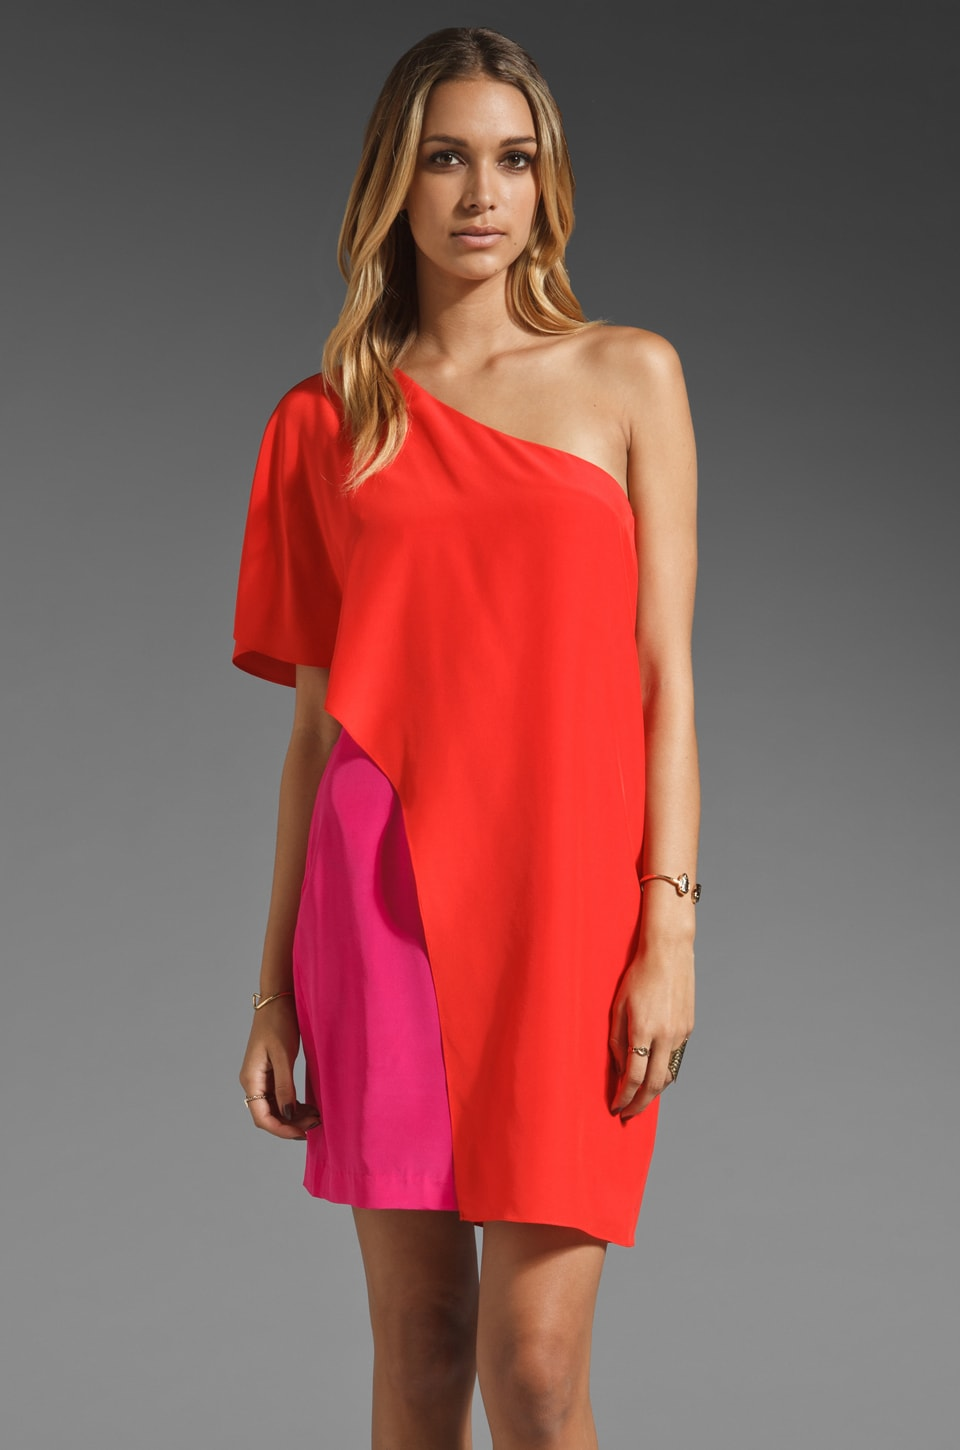 Trina Turk Solid Crepe Heroine One Shoulder Dress in Poppy/Hyper Pink